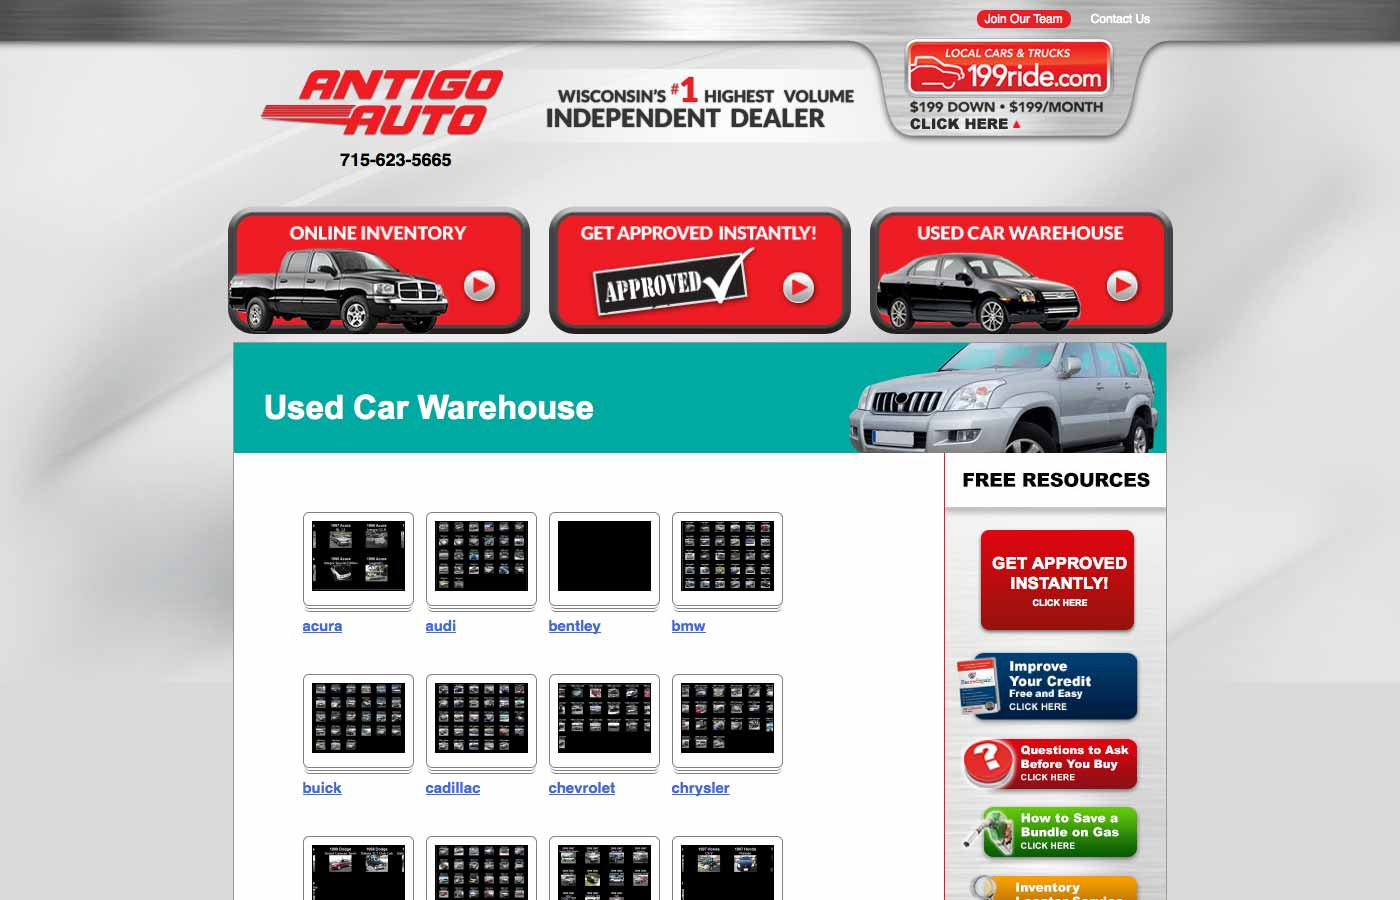 antigo auto used car warehouse